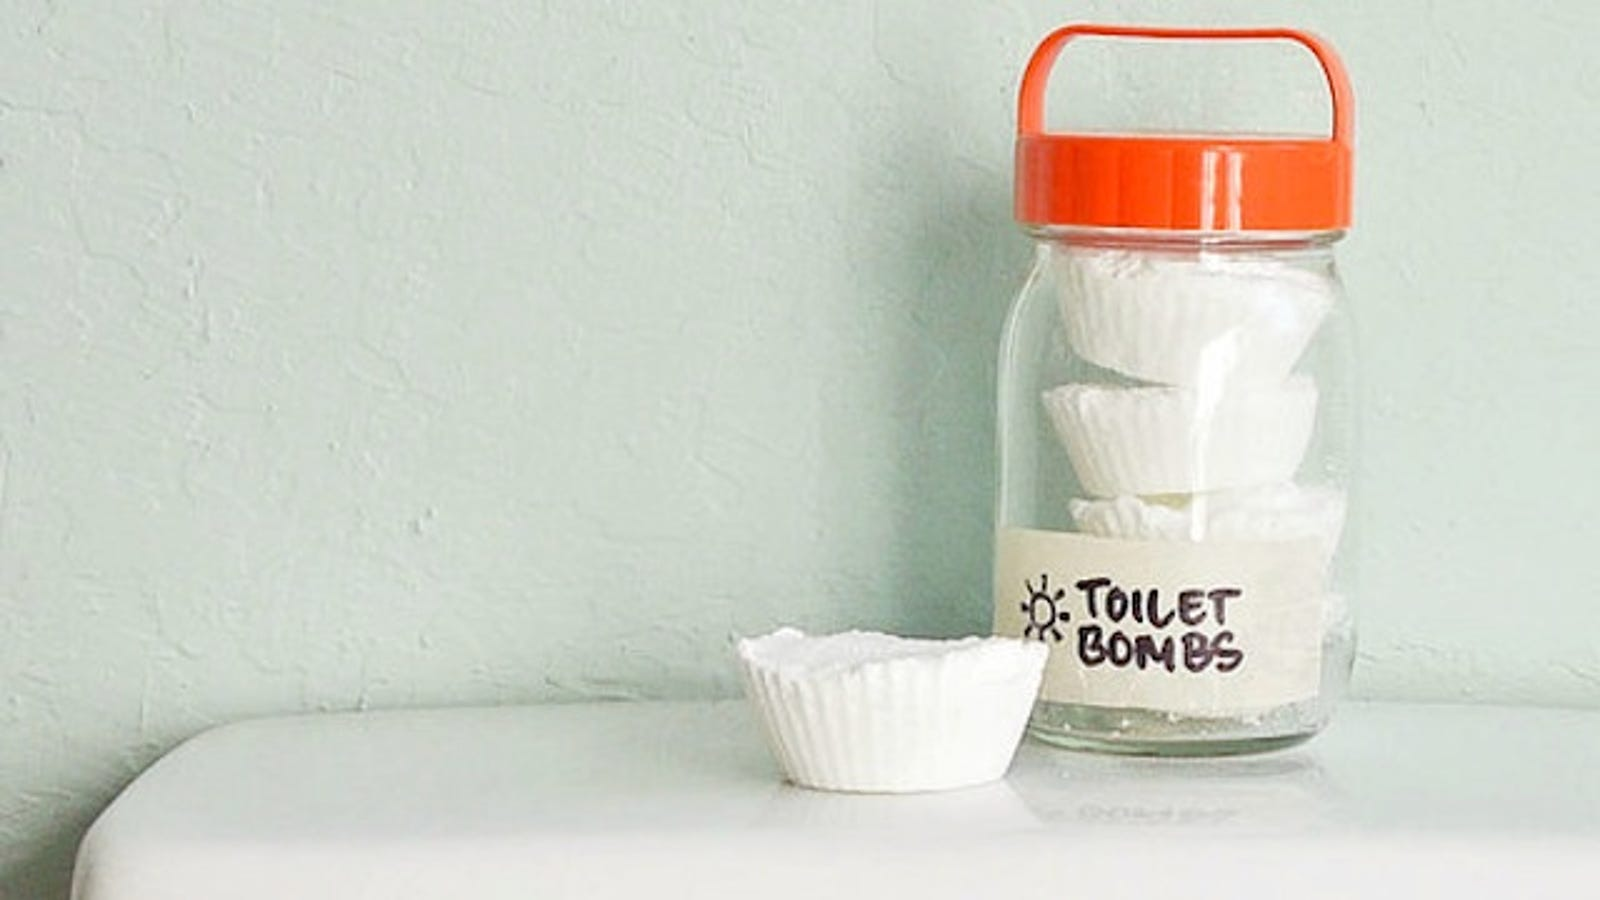 Clogged Sink Drain: These DIY Toilet Tablets Bust Through Clogged Drains